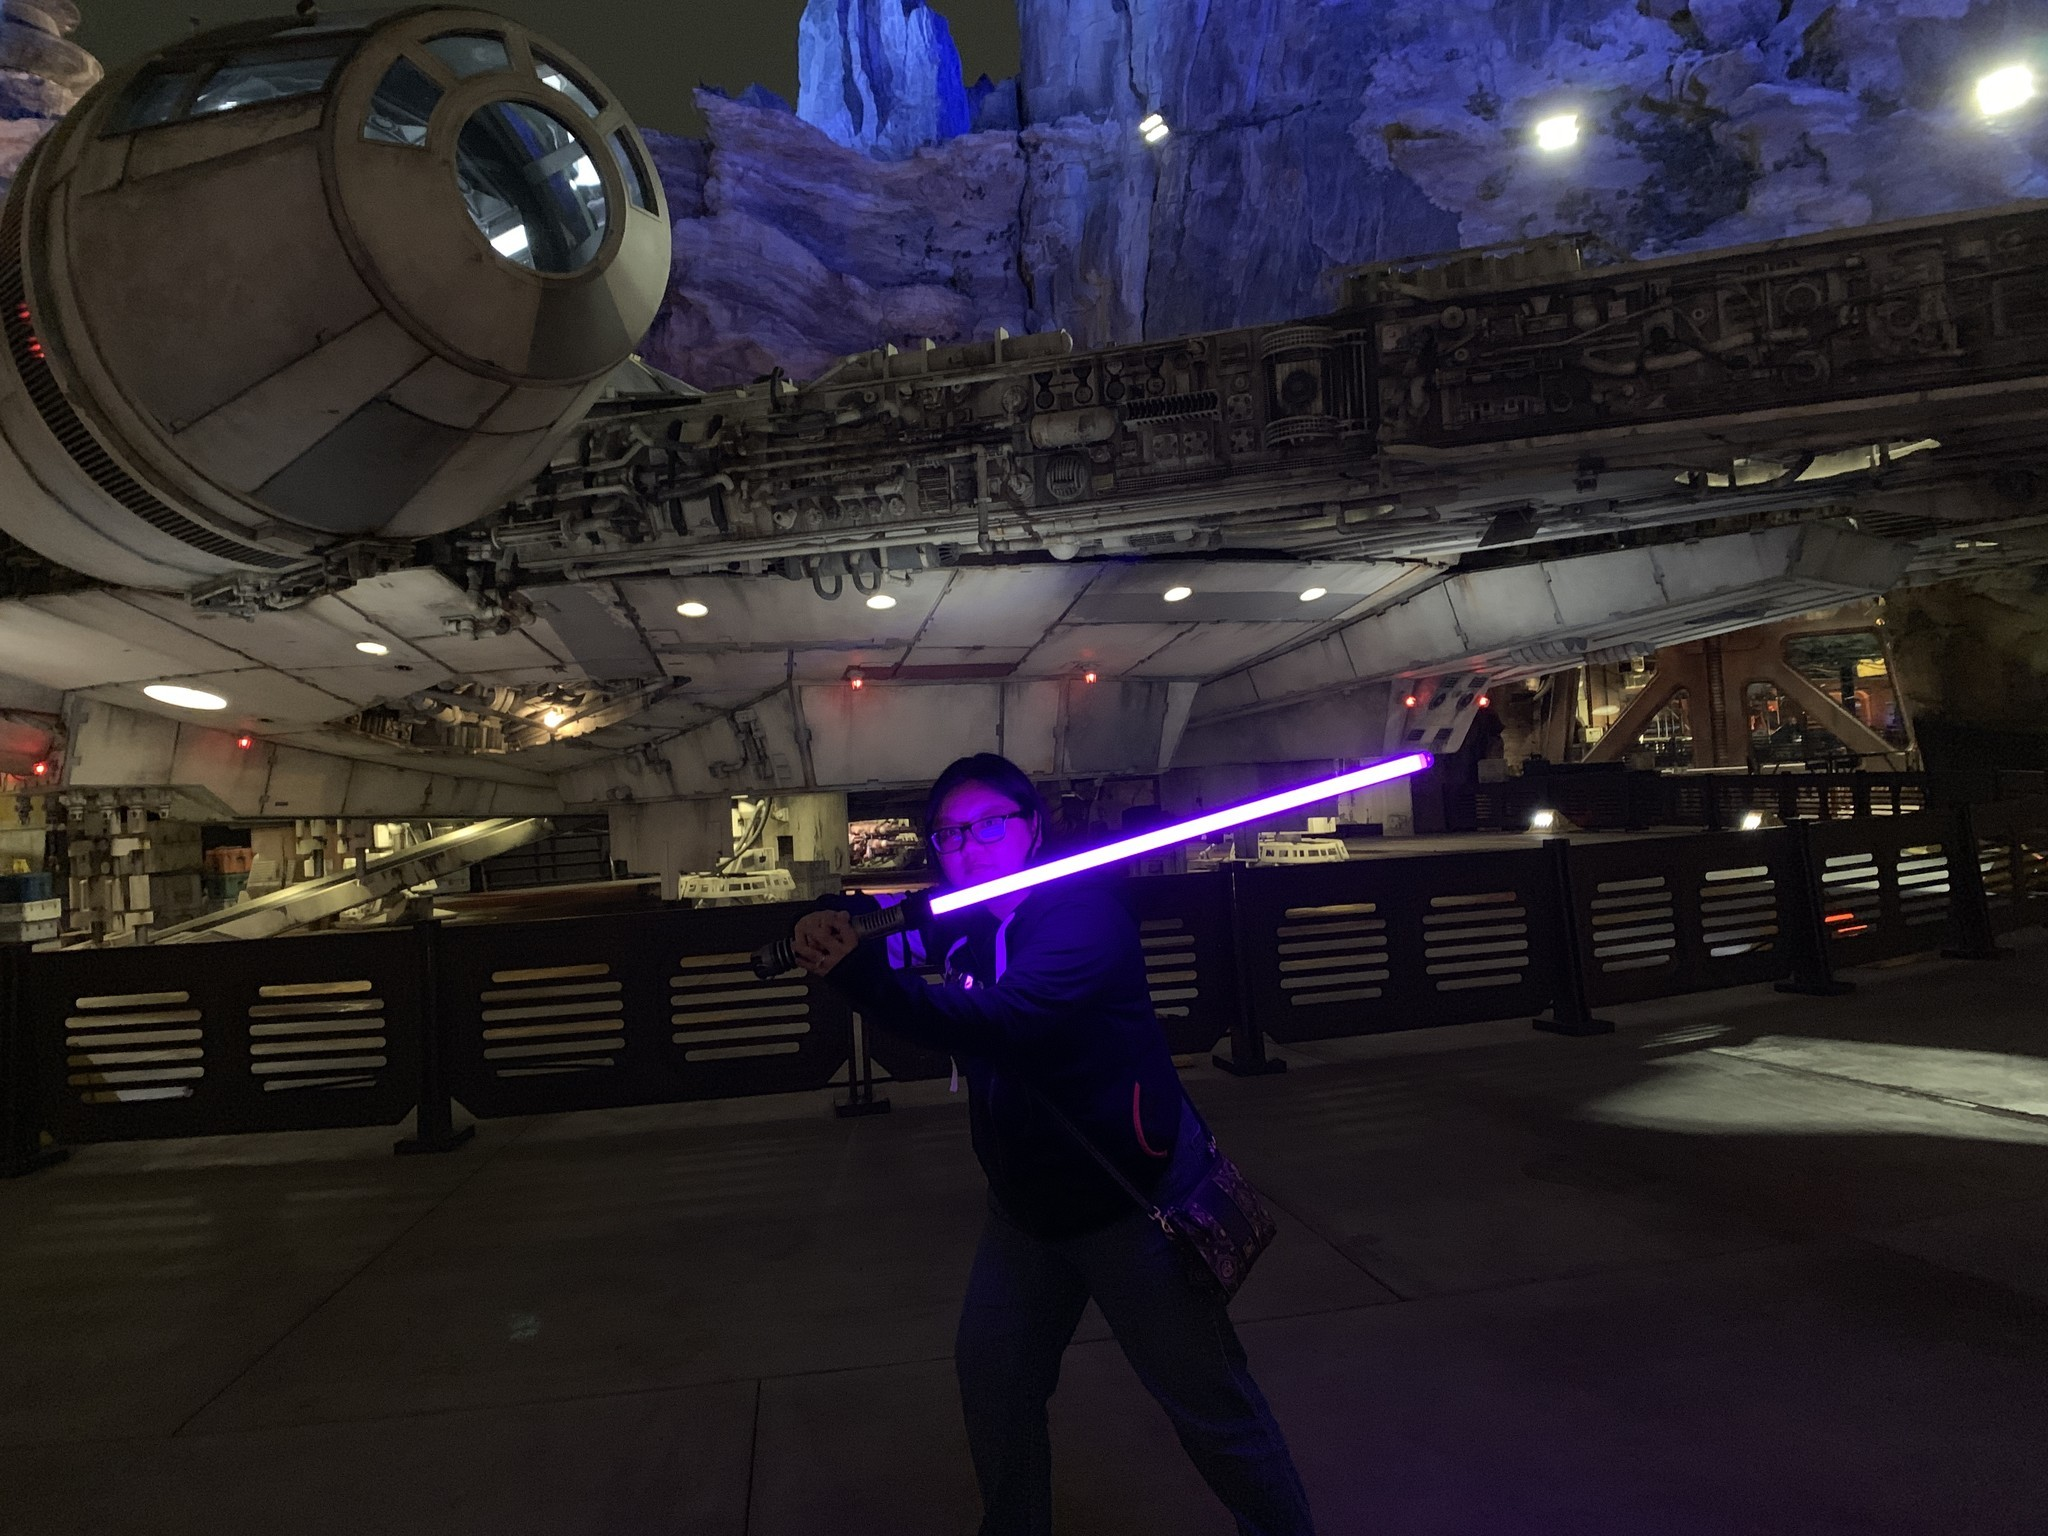 hight resolution of christine chan holds her violet lightsaber in front of the millennium falcon